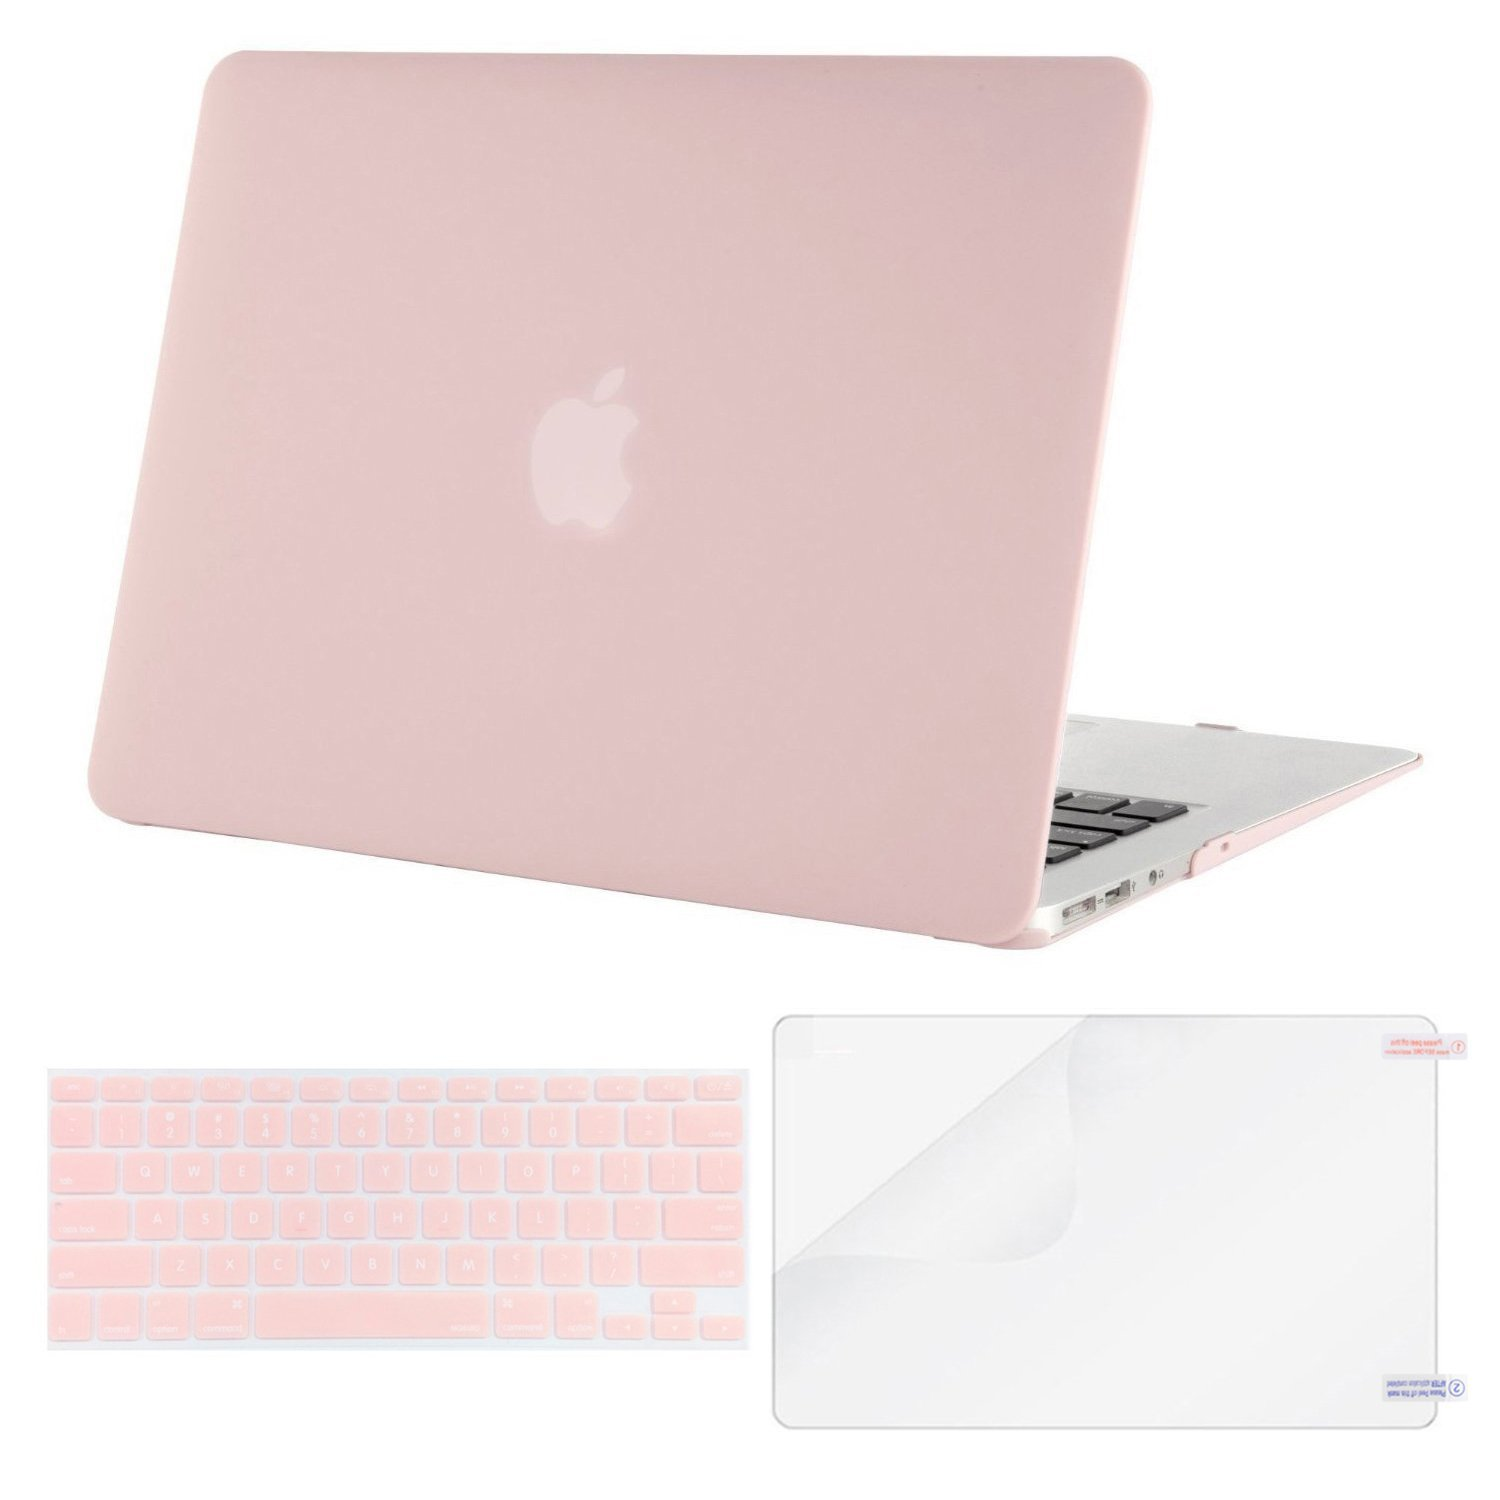 Best Apple MacBook Pro Covers